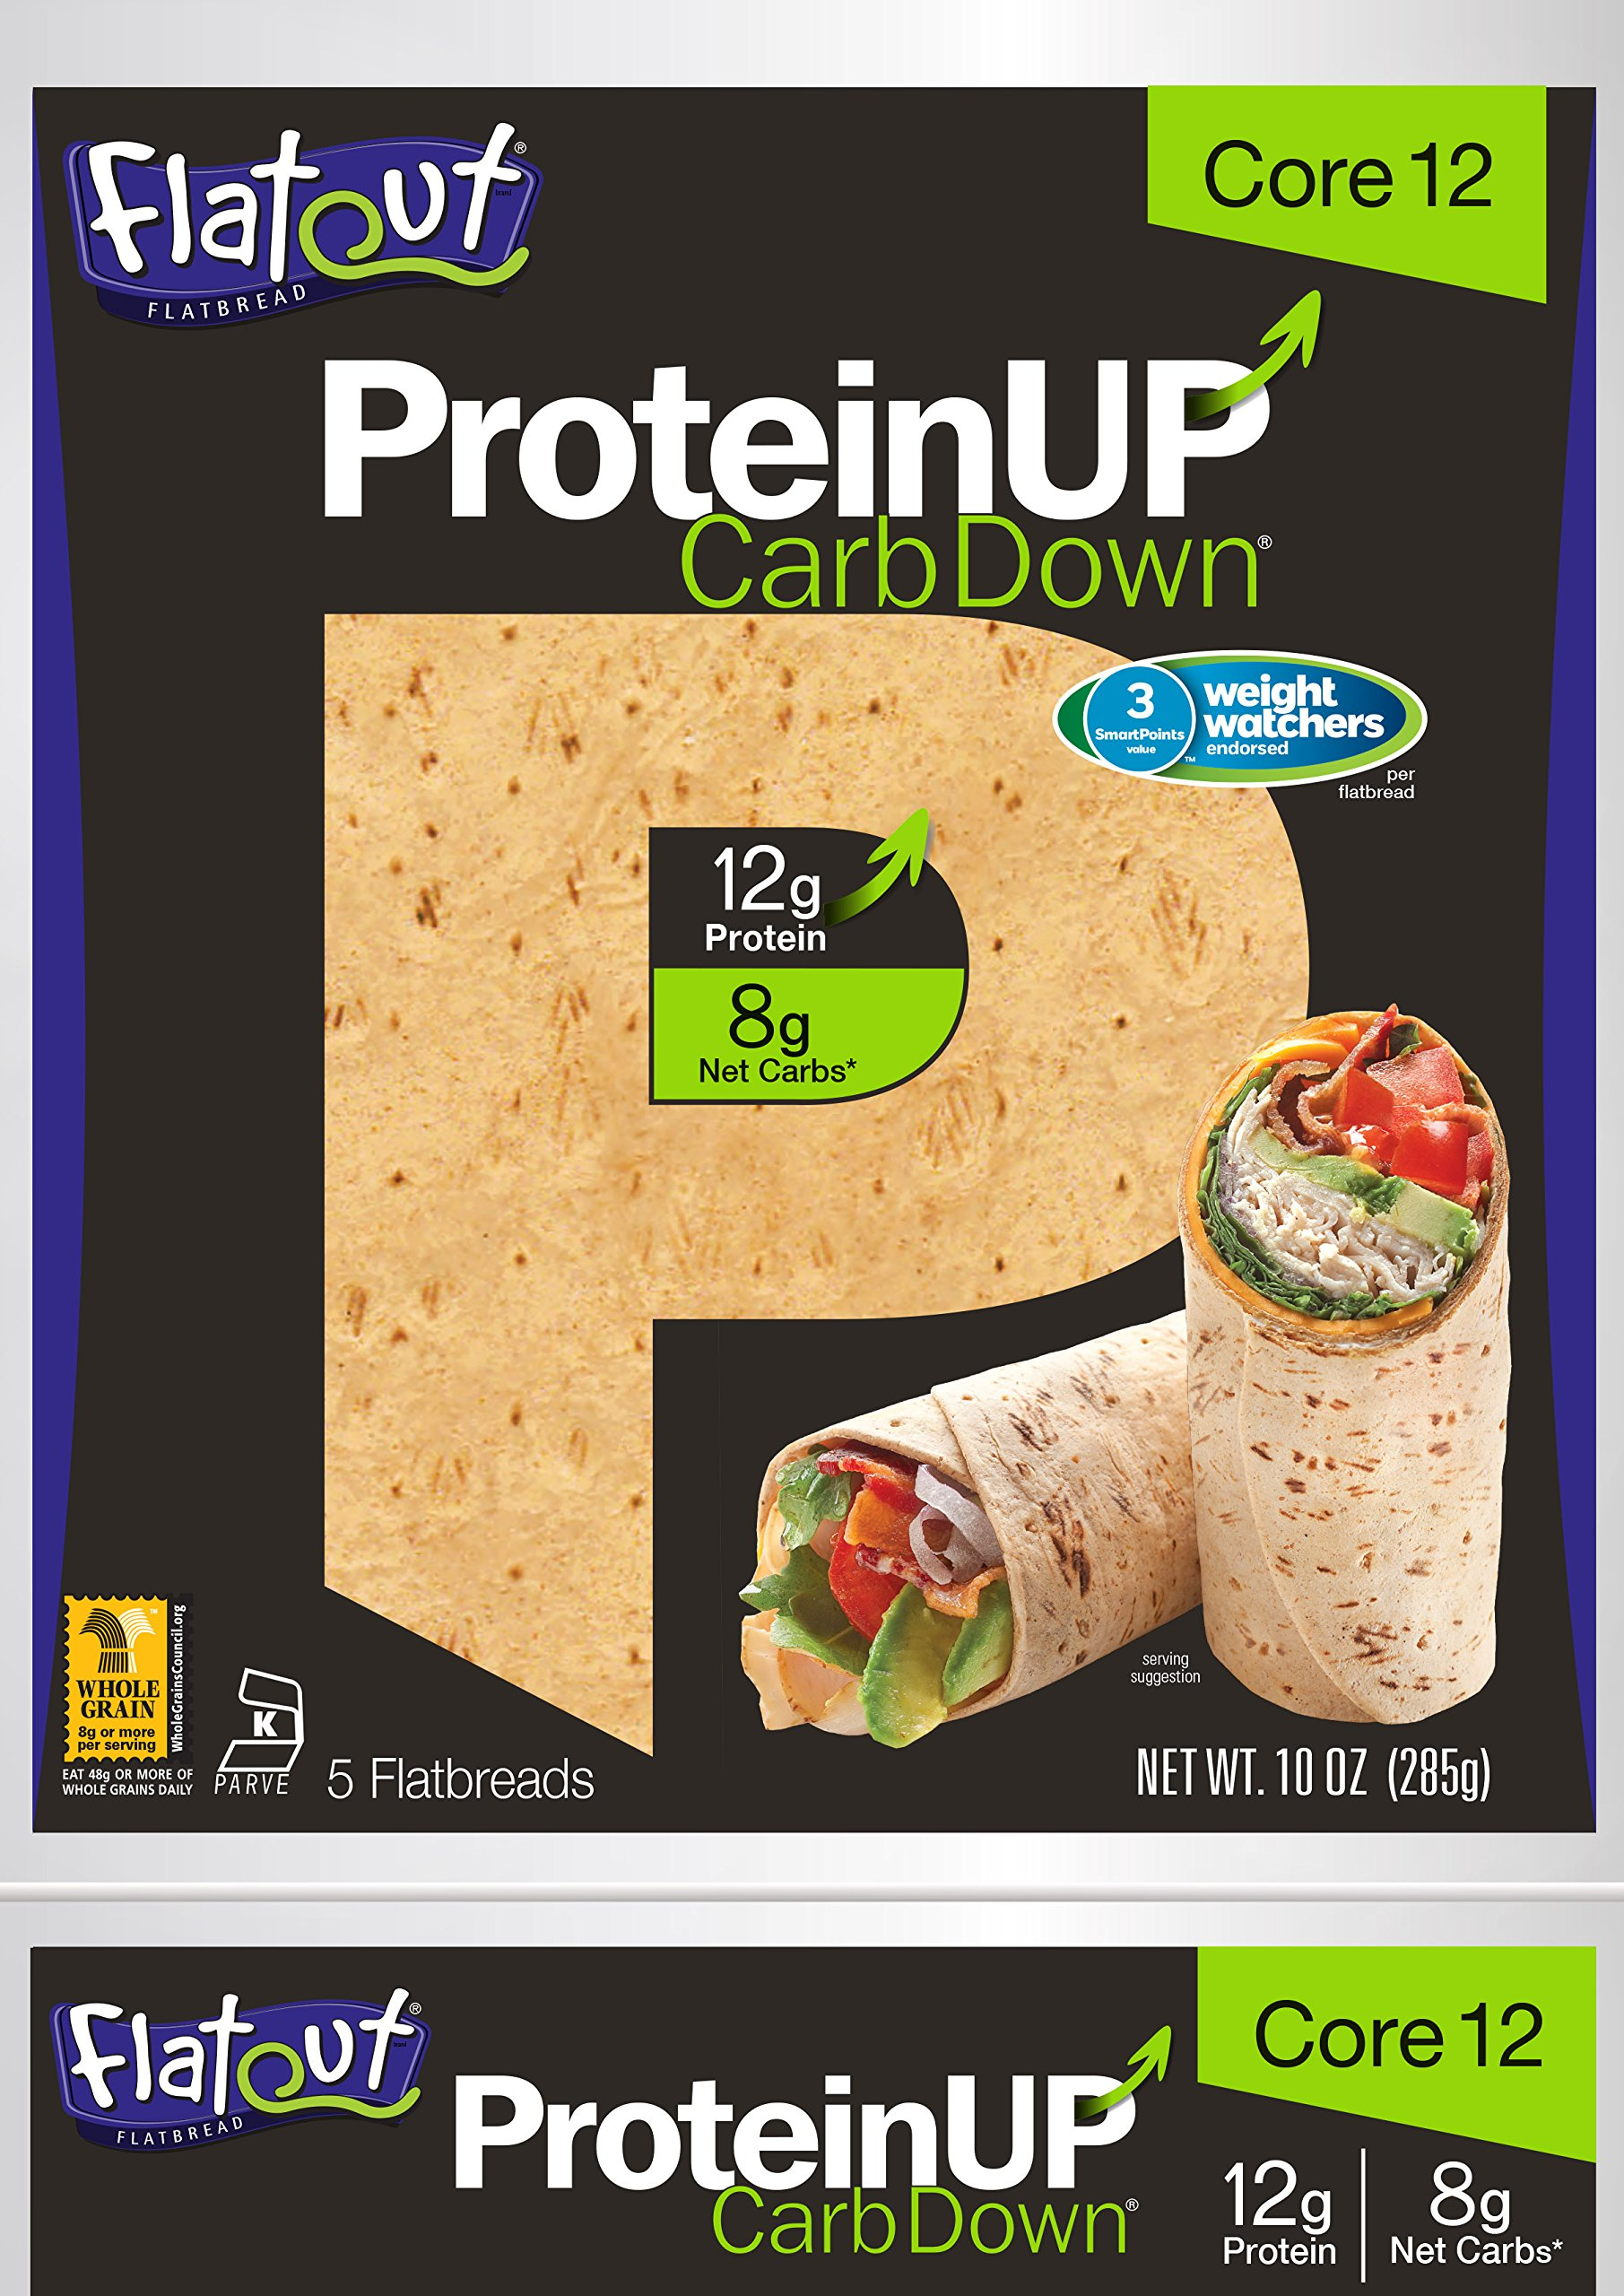 Flatout ProteinUP Flatbread Core 12 - 5 Wraps (2 Pack)